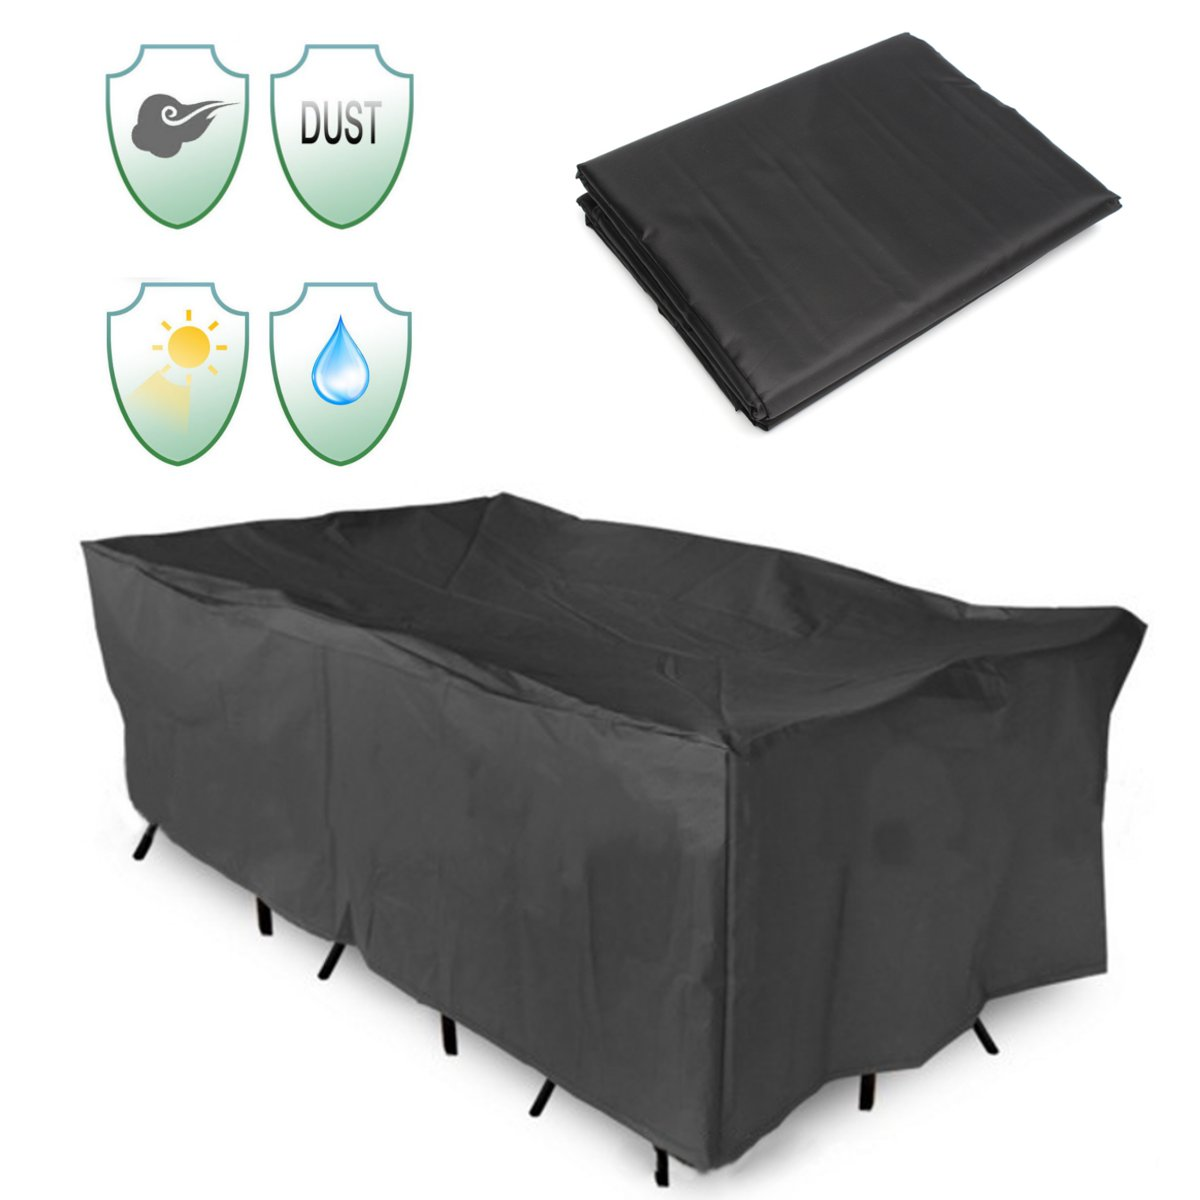 Outdoor Patio Table Cover All-Purpose Chair Set Furniture Cover Waterproof Garden Protective Dust Covers Canopy 3 Sizes Black